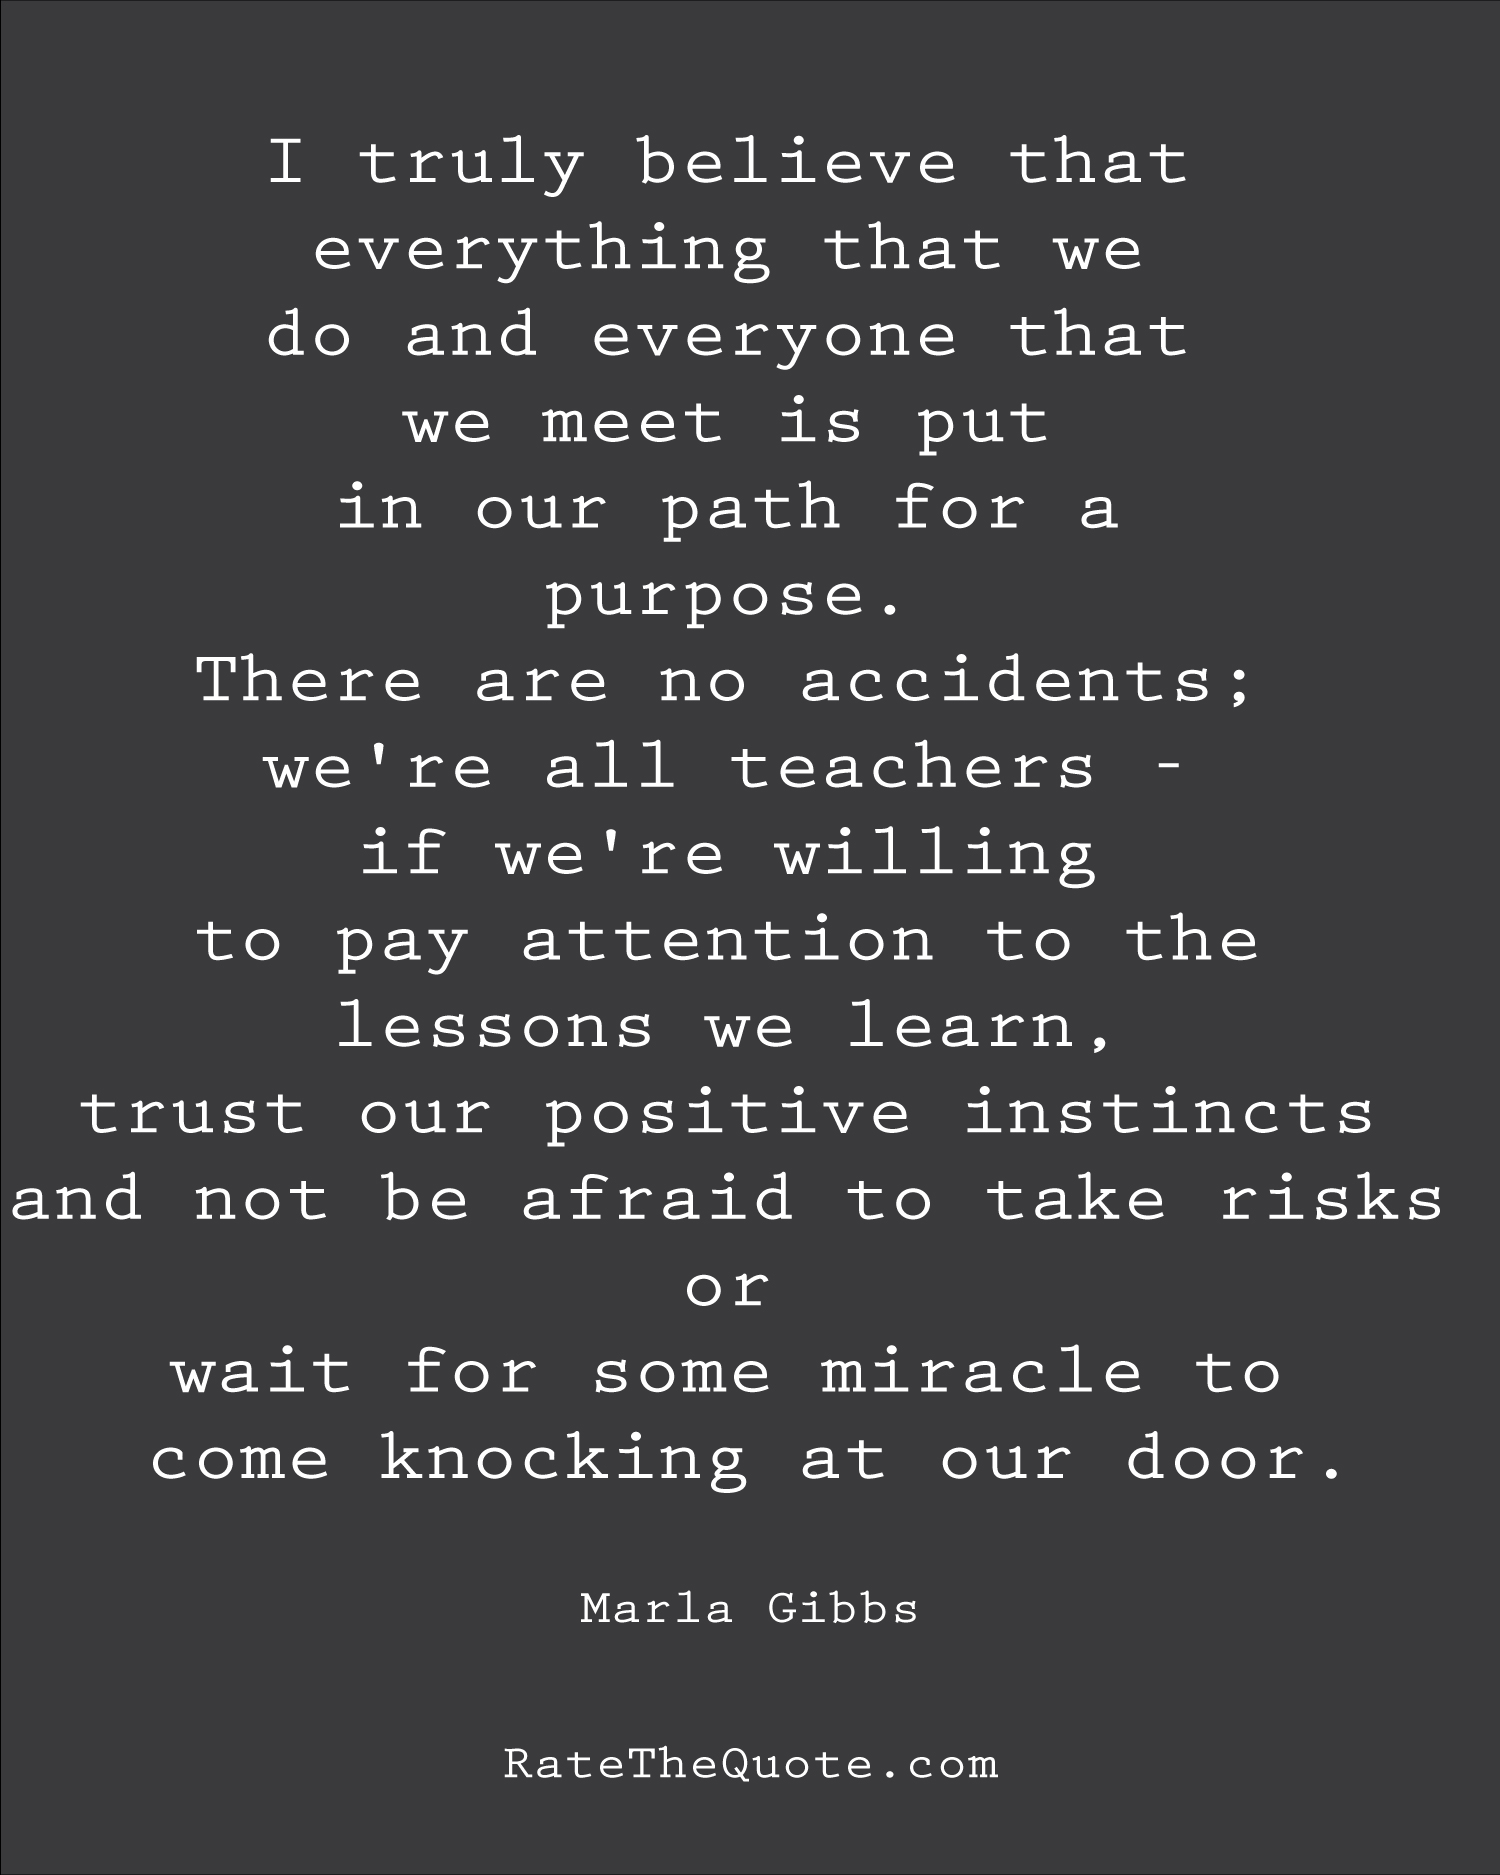 I truly believe that everything that we do and everyone that we meet is put in our path for a purpose. There are no accidents; we're all teachers - if we're willing to pay attention to the lessons we learn, trust our positive instincts and not be afraid to take risks or wait for some miracle to come knocking at our door. Marla Gibbs